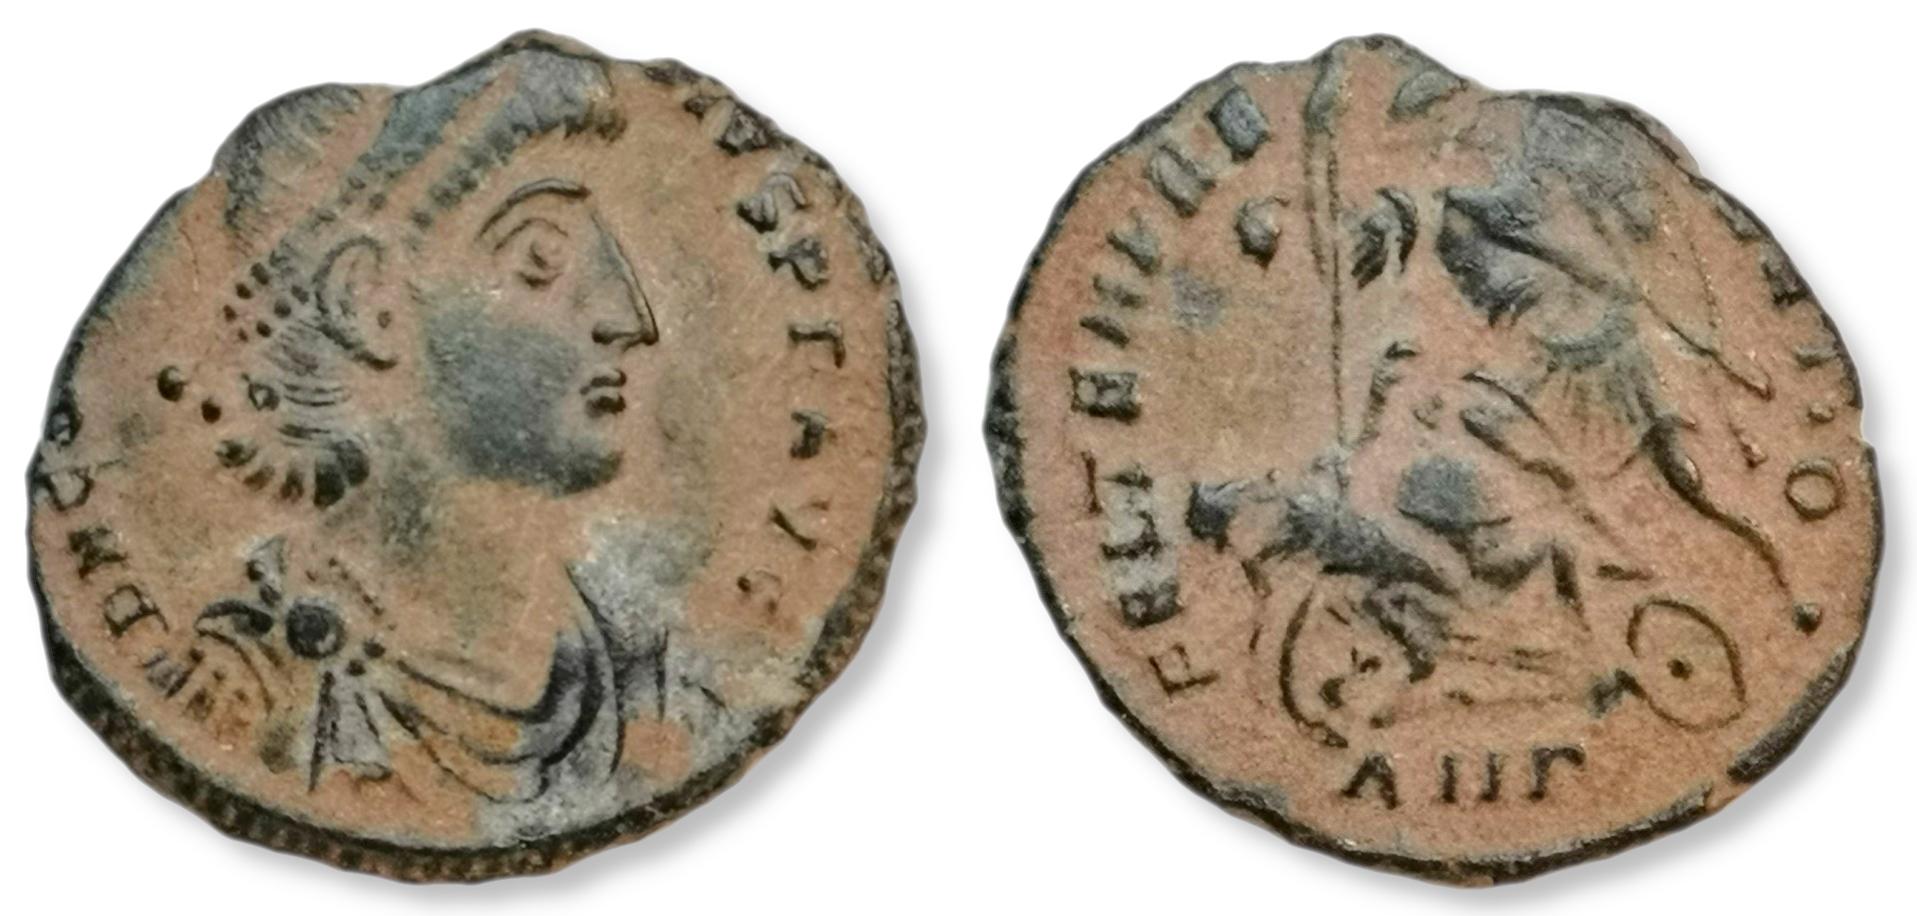 /Files/Images/Coinsite/CoinDB/constantius3.jpg